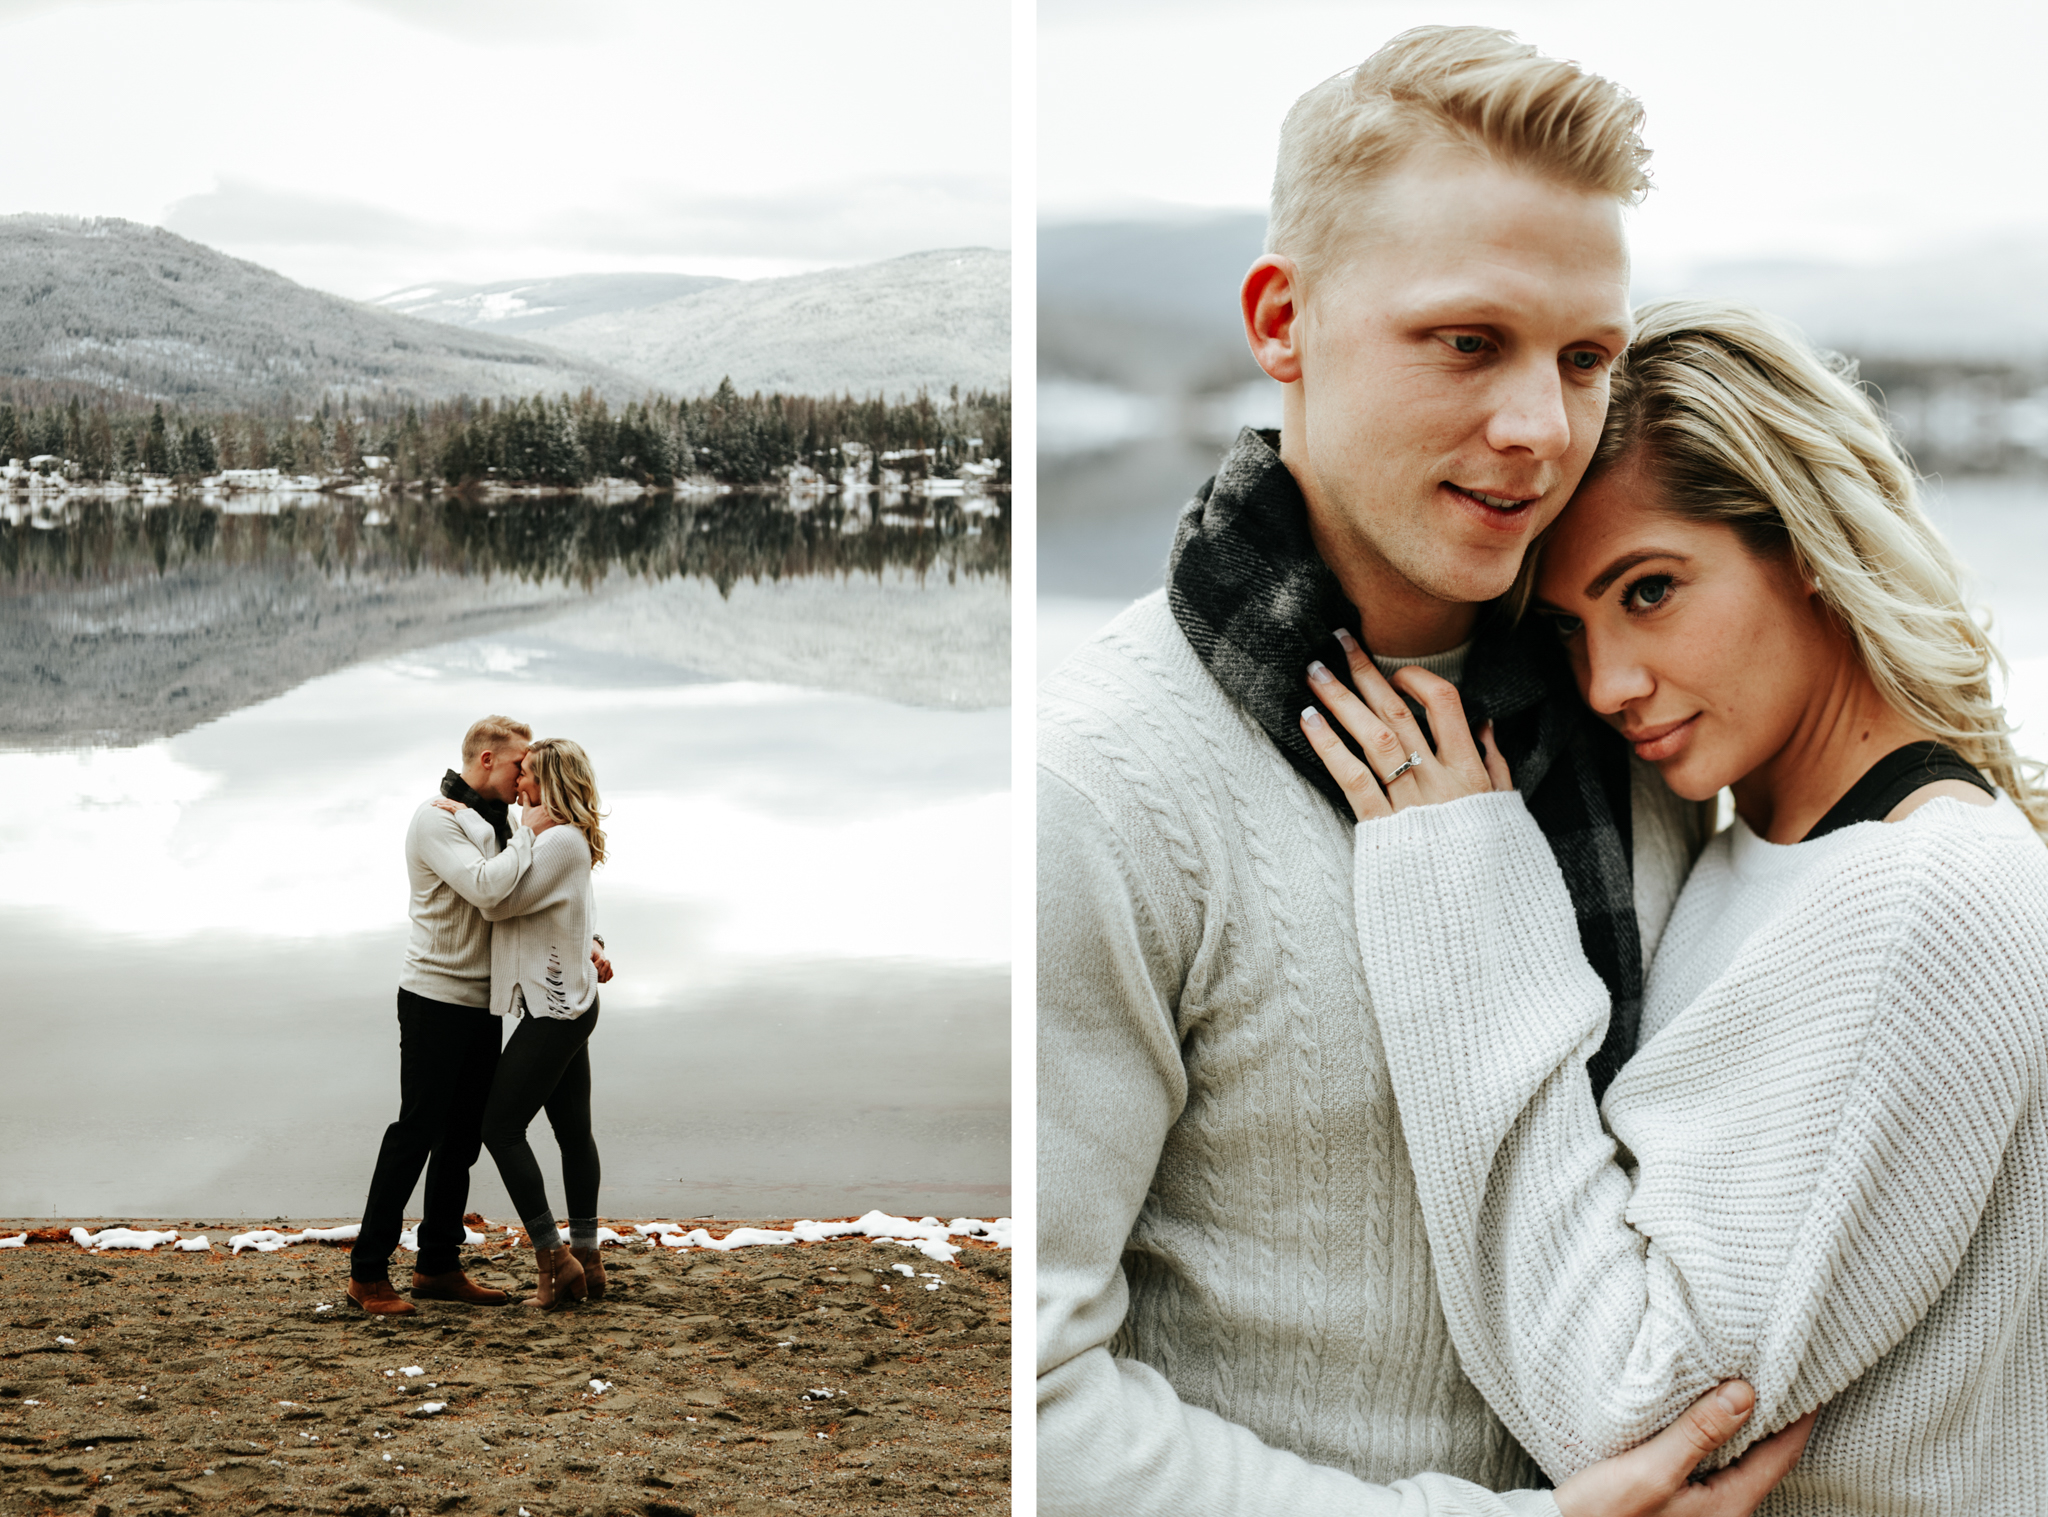 love-and-be-loved-photography-mountain-engagement-ashlyn-rob-perfect-fit-4-u-photo-image-picture-2.jpg